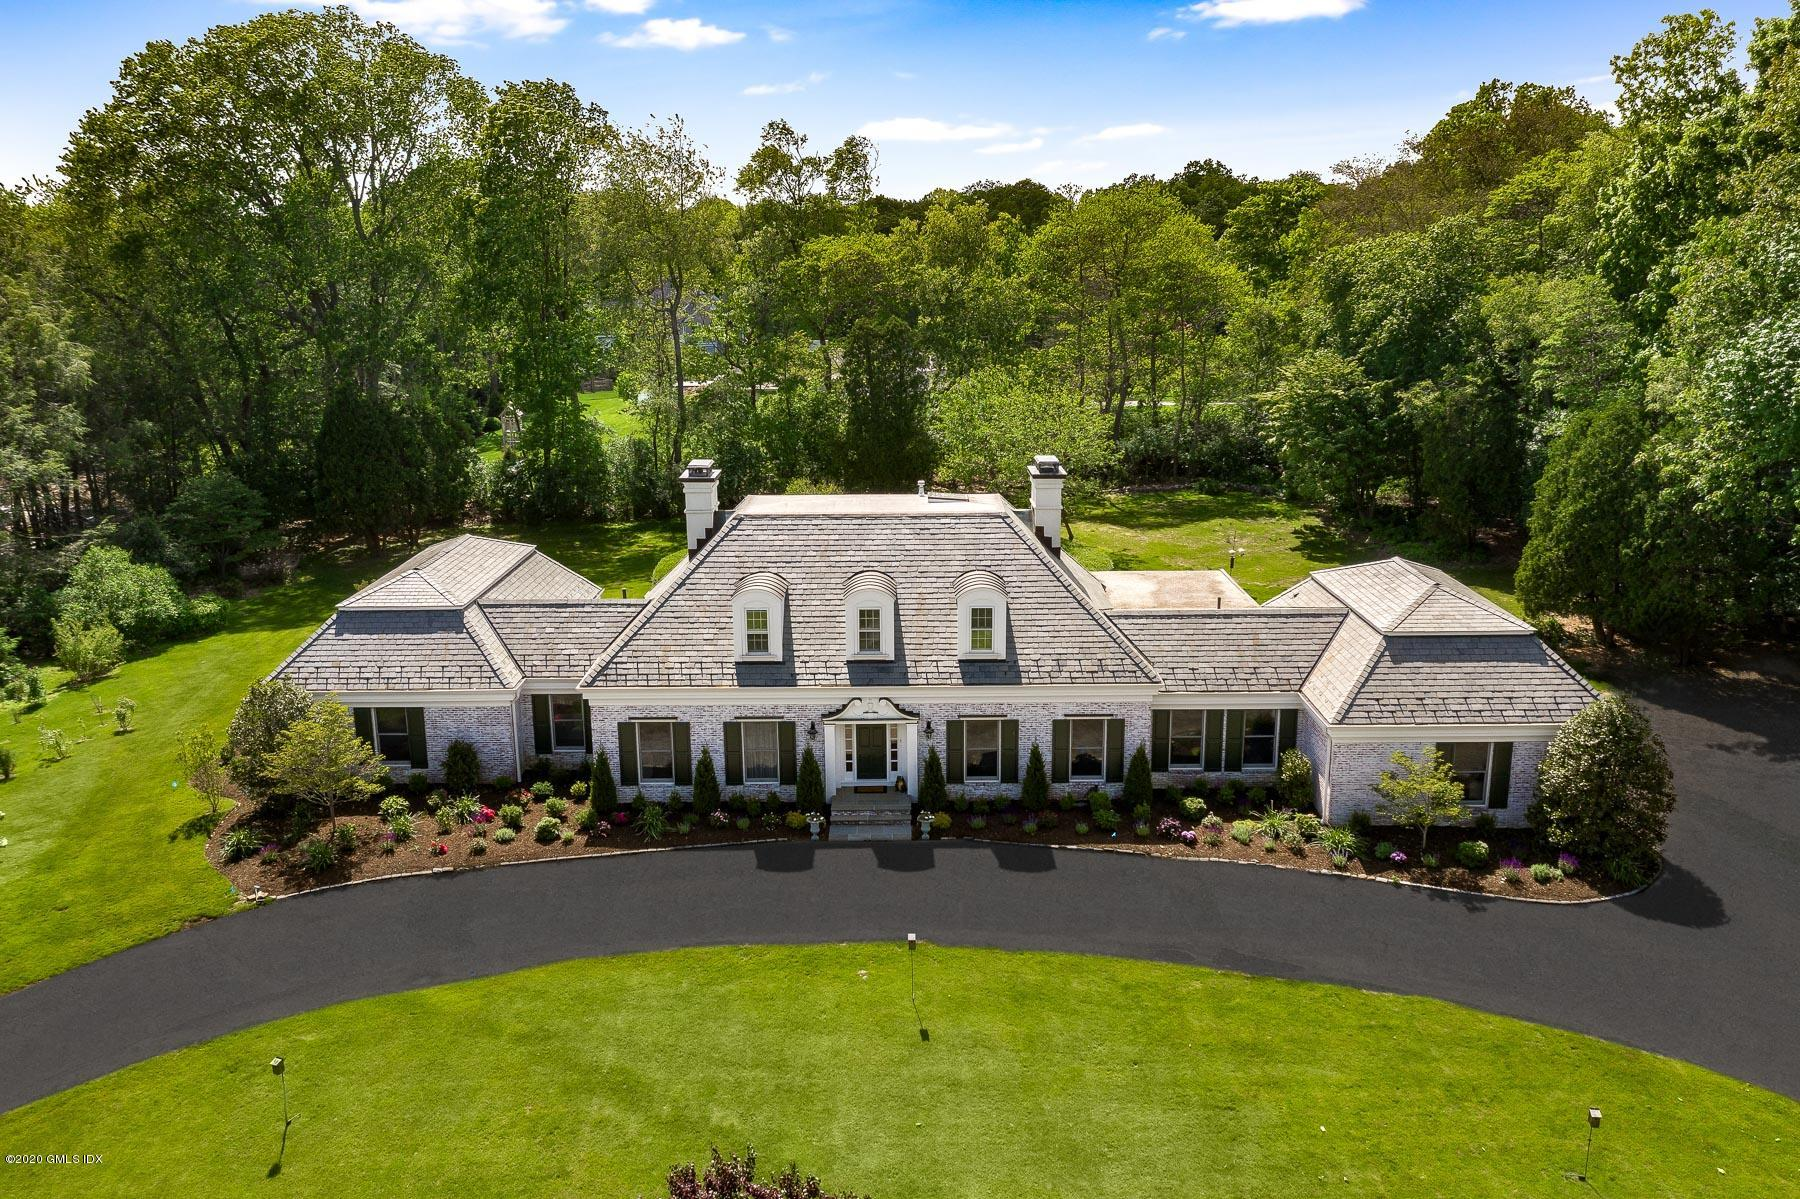 1 Lismore Lane,Greenwich,Connecticut 06831,5 Bedrooms Bedrooms,4 BathroomsBathrooms,Single family,Lismore,106480